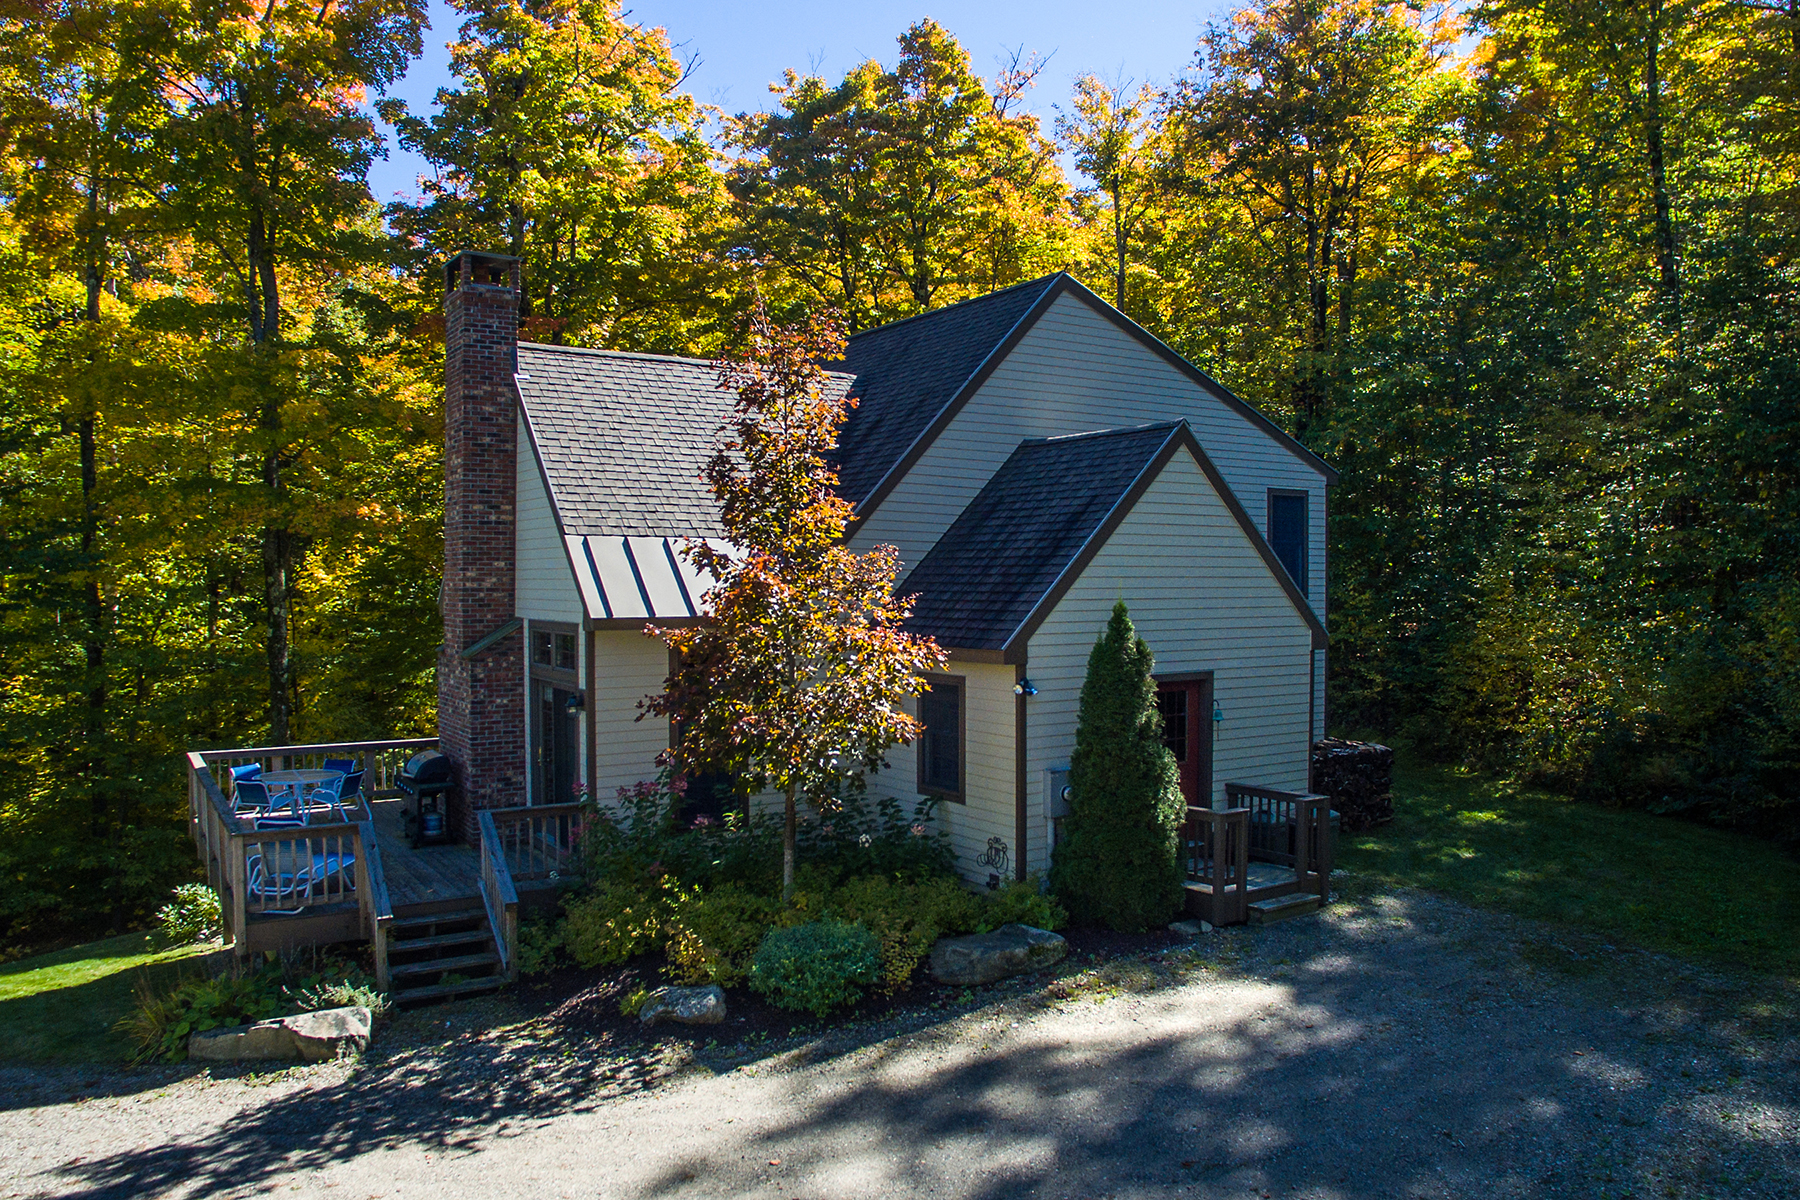 Single Family Home for Sale at 17 Rogue's Ridge, Winhall Winhall, Vermont, 05340 United States